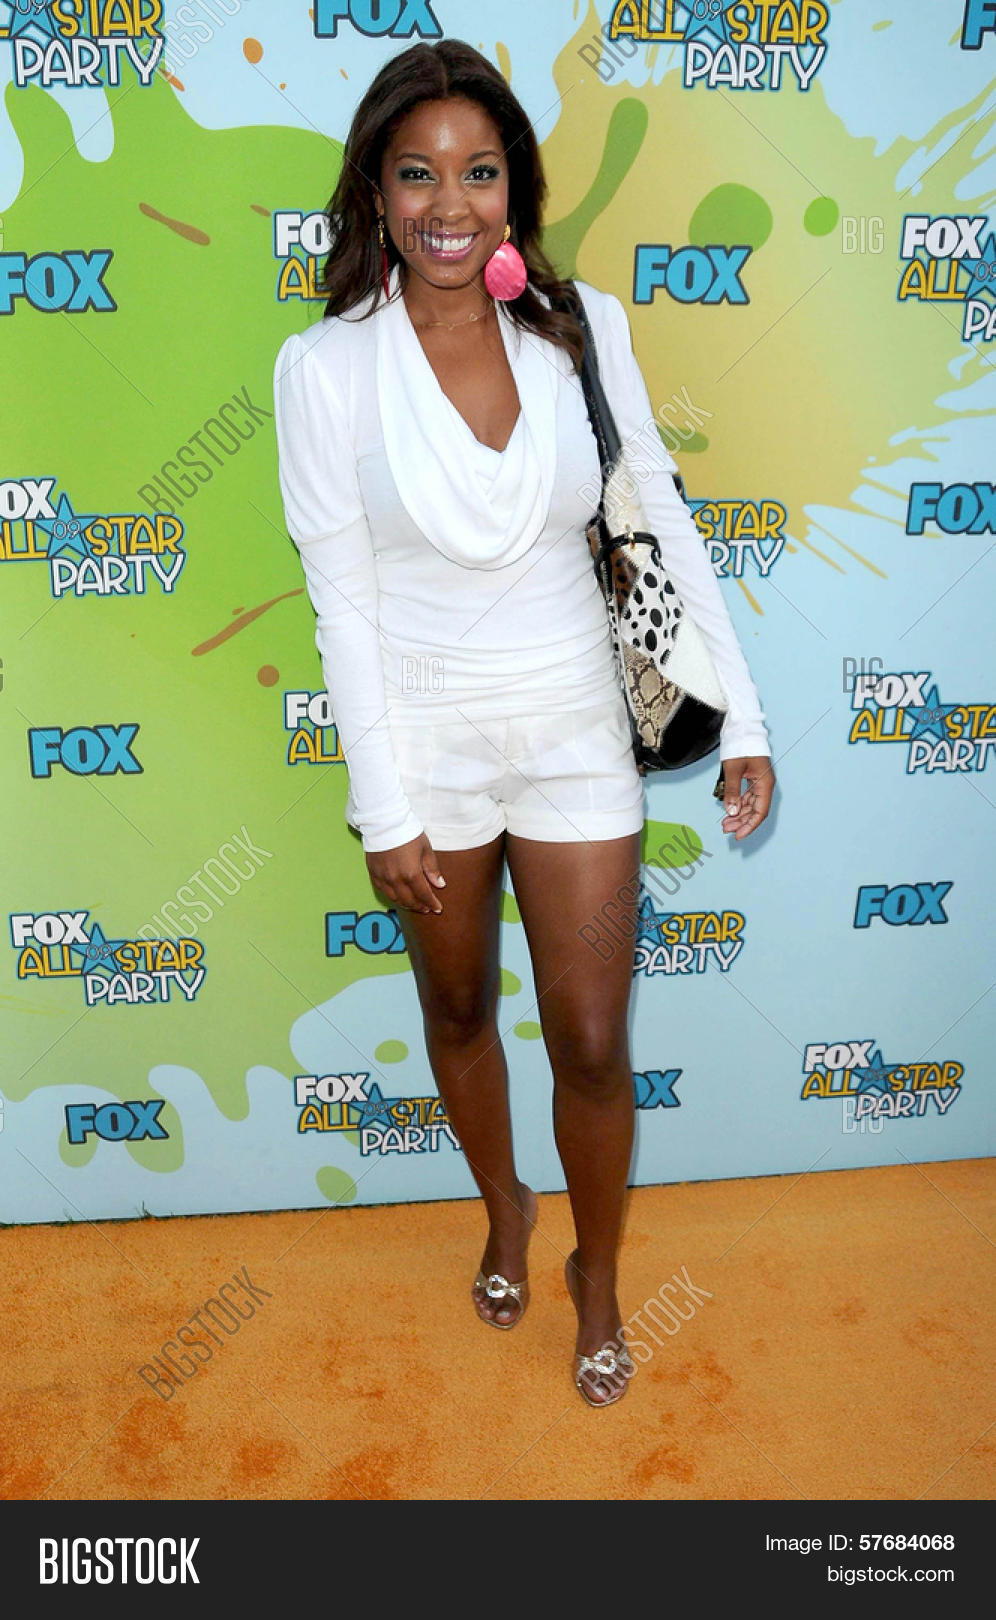 Reagan Gomez-Preston Nude Photos 22